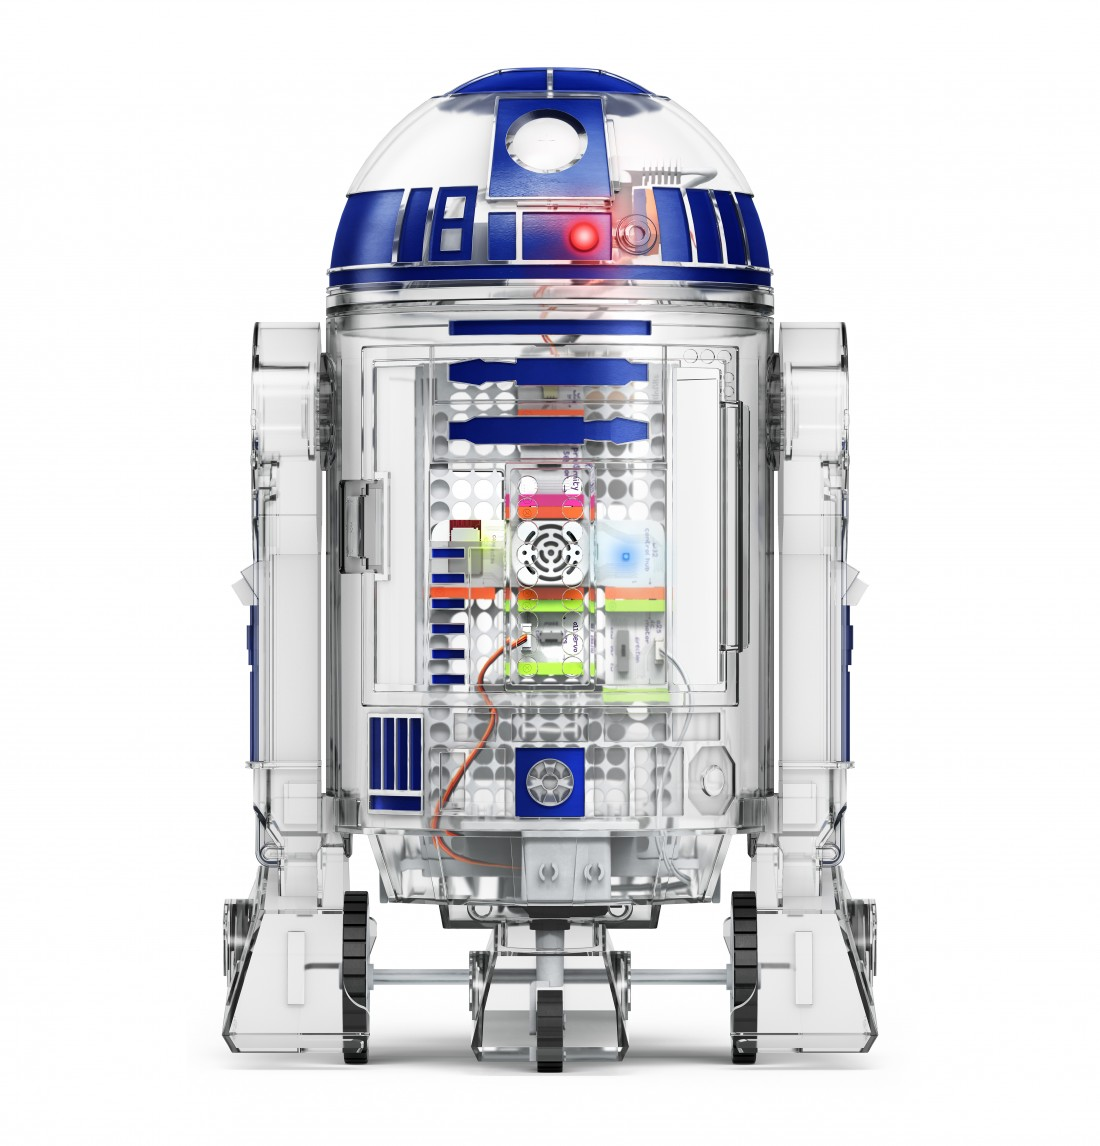 Calling All Inventors: Littlebits Droid Inventor Kit Is Here! Star Wars R2